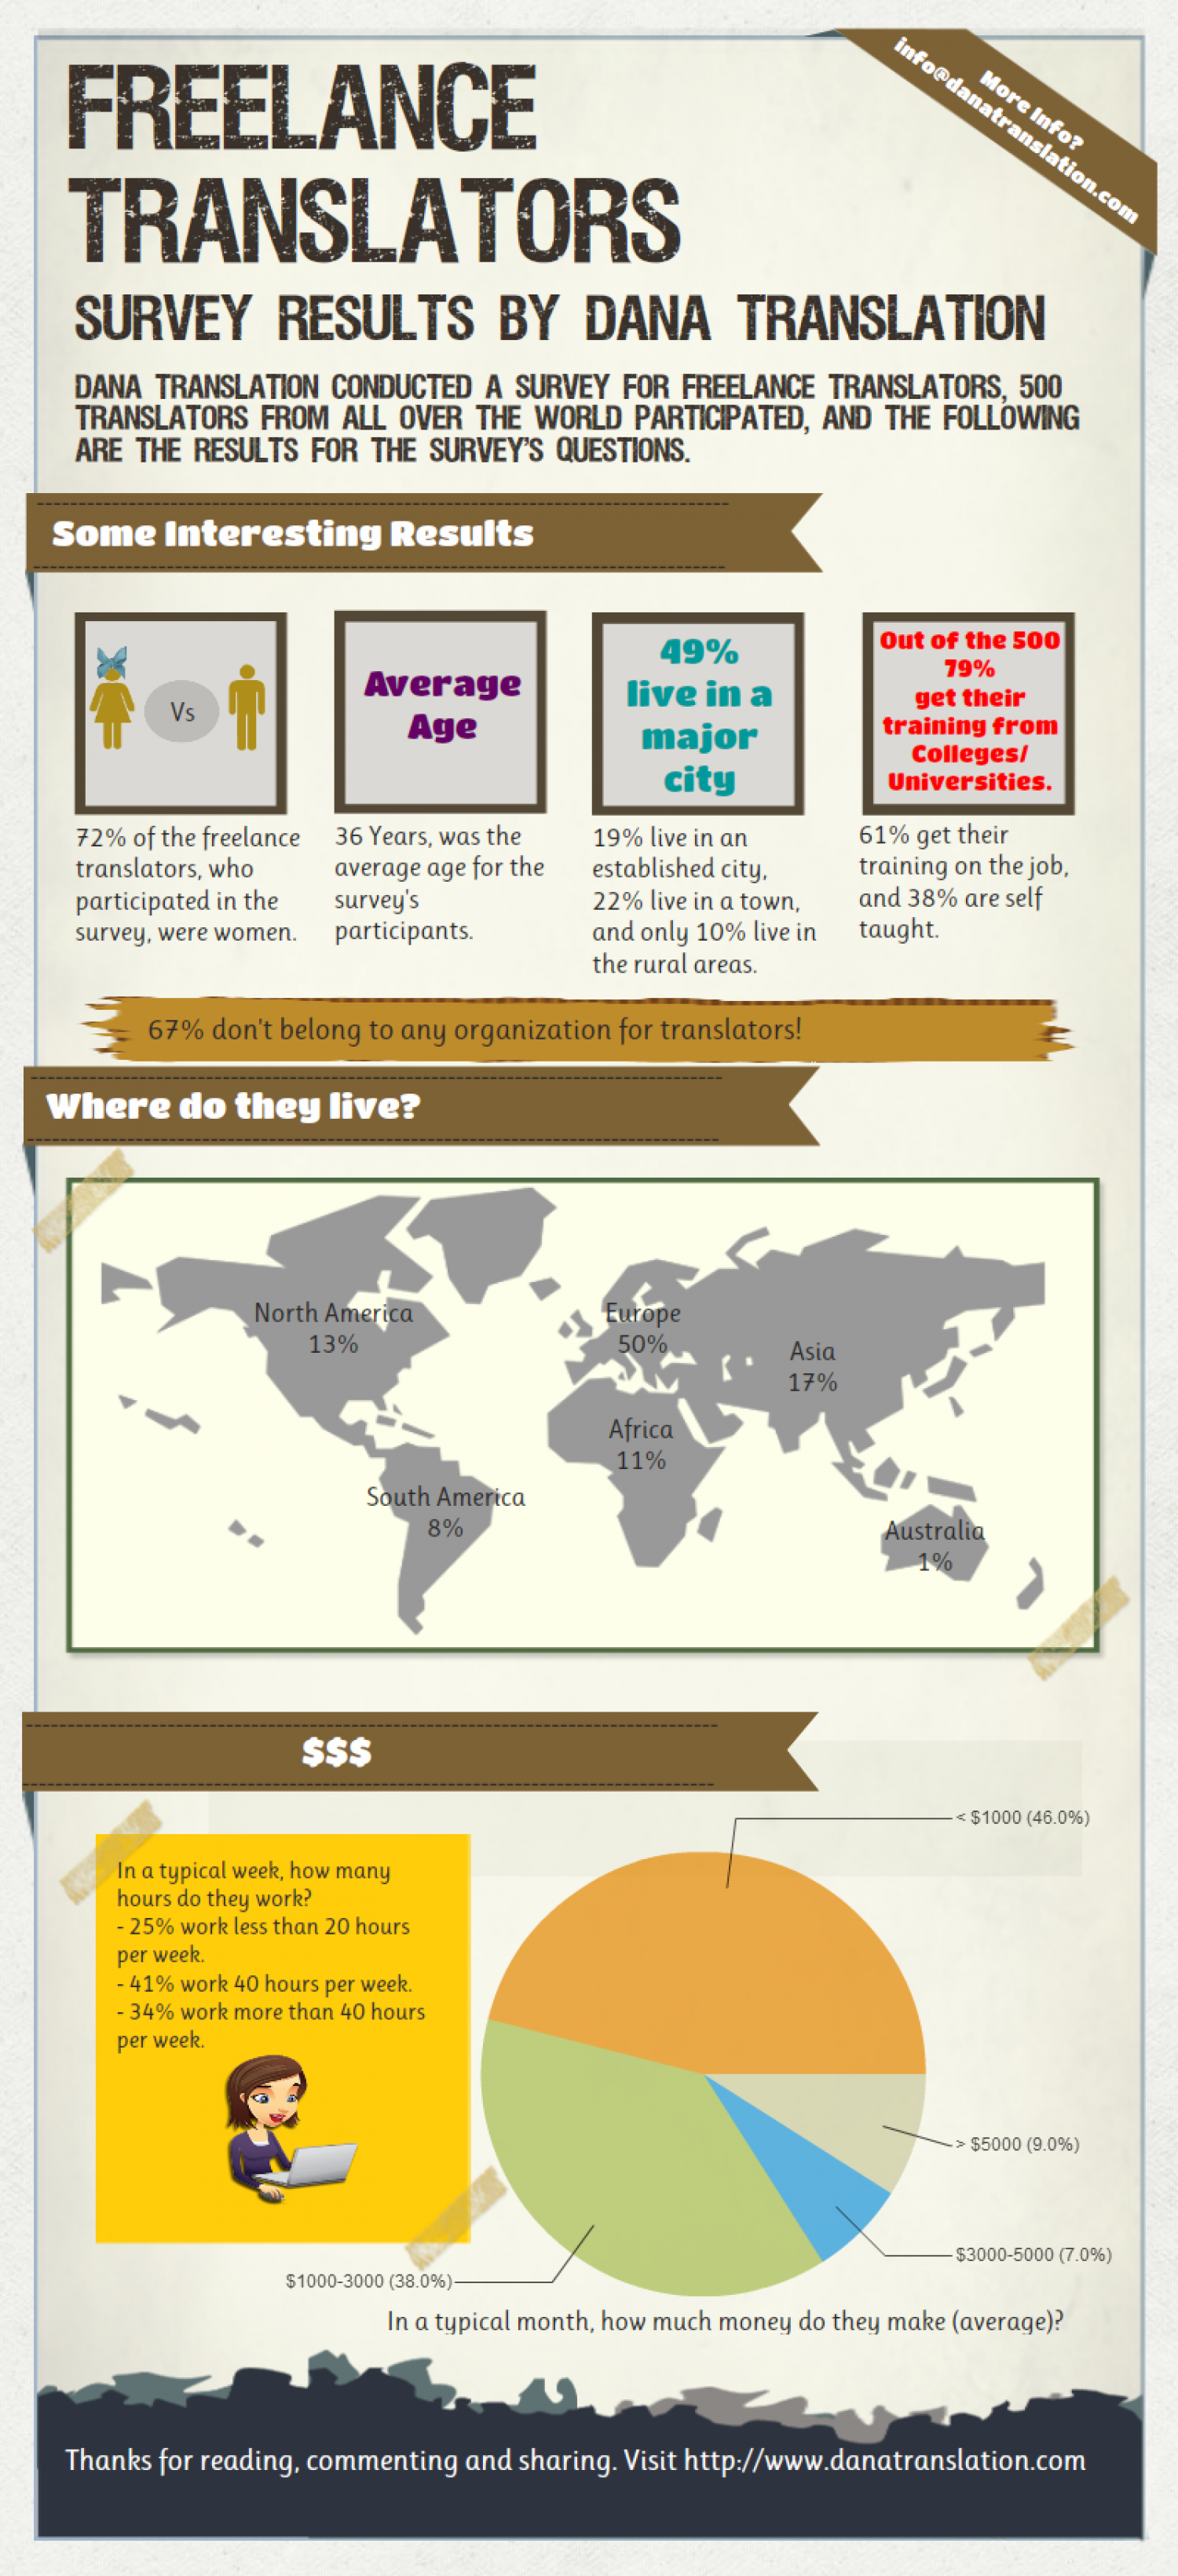 Freelance Translators Infographic